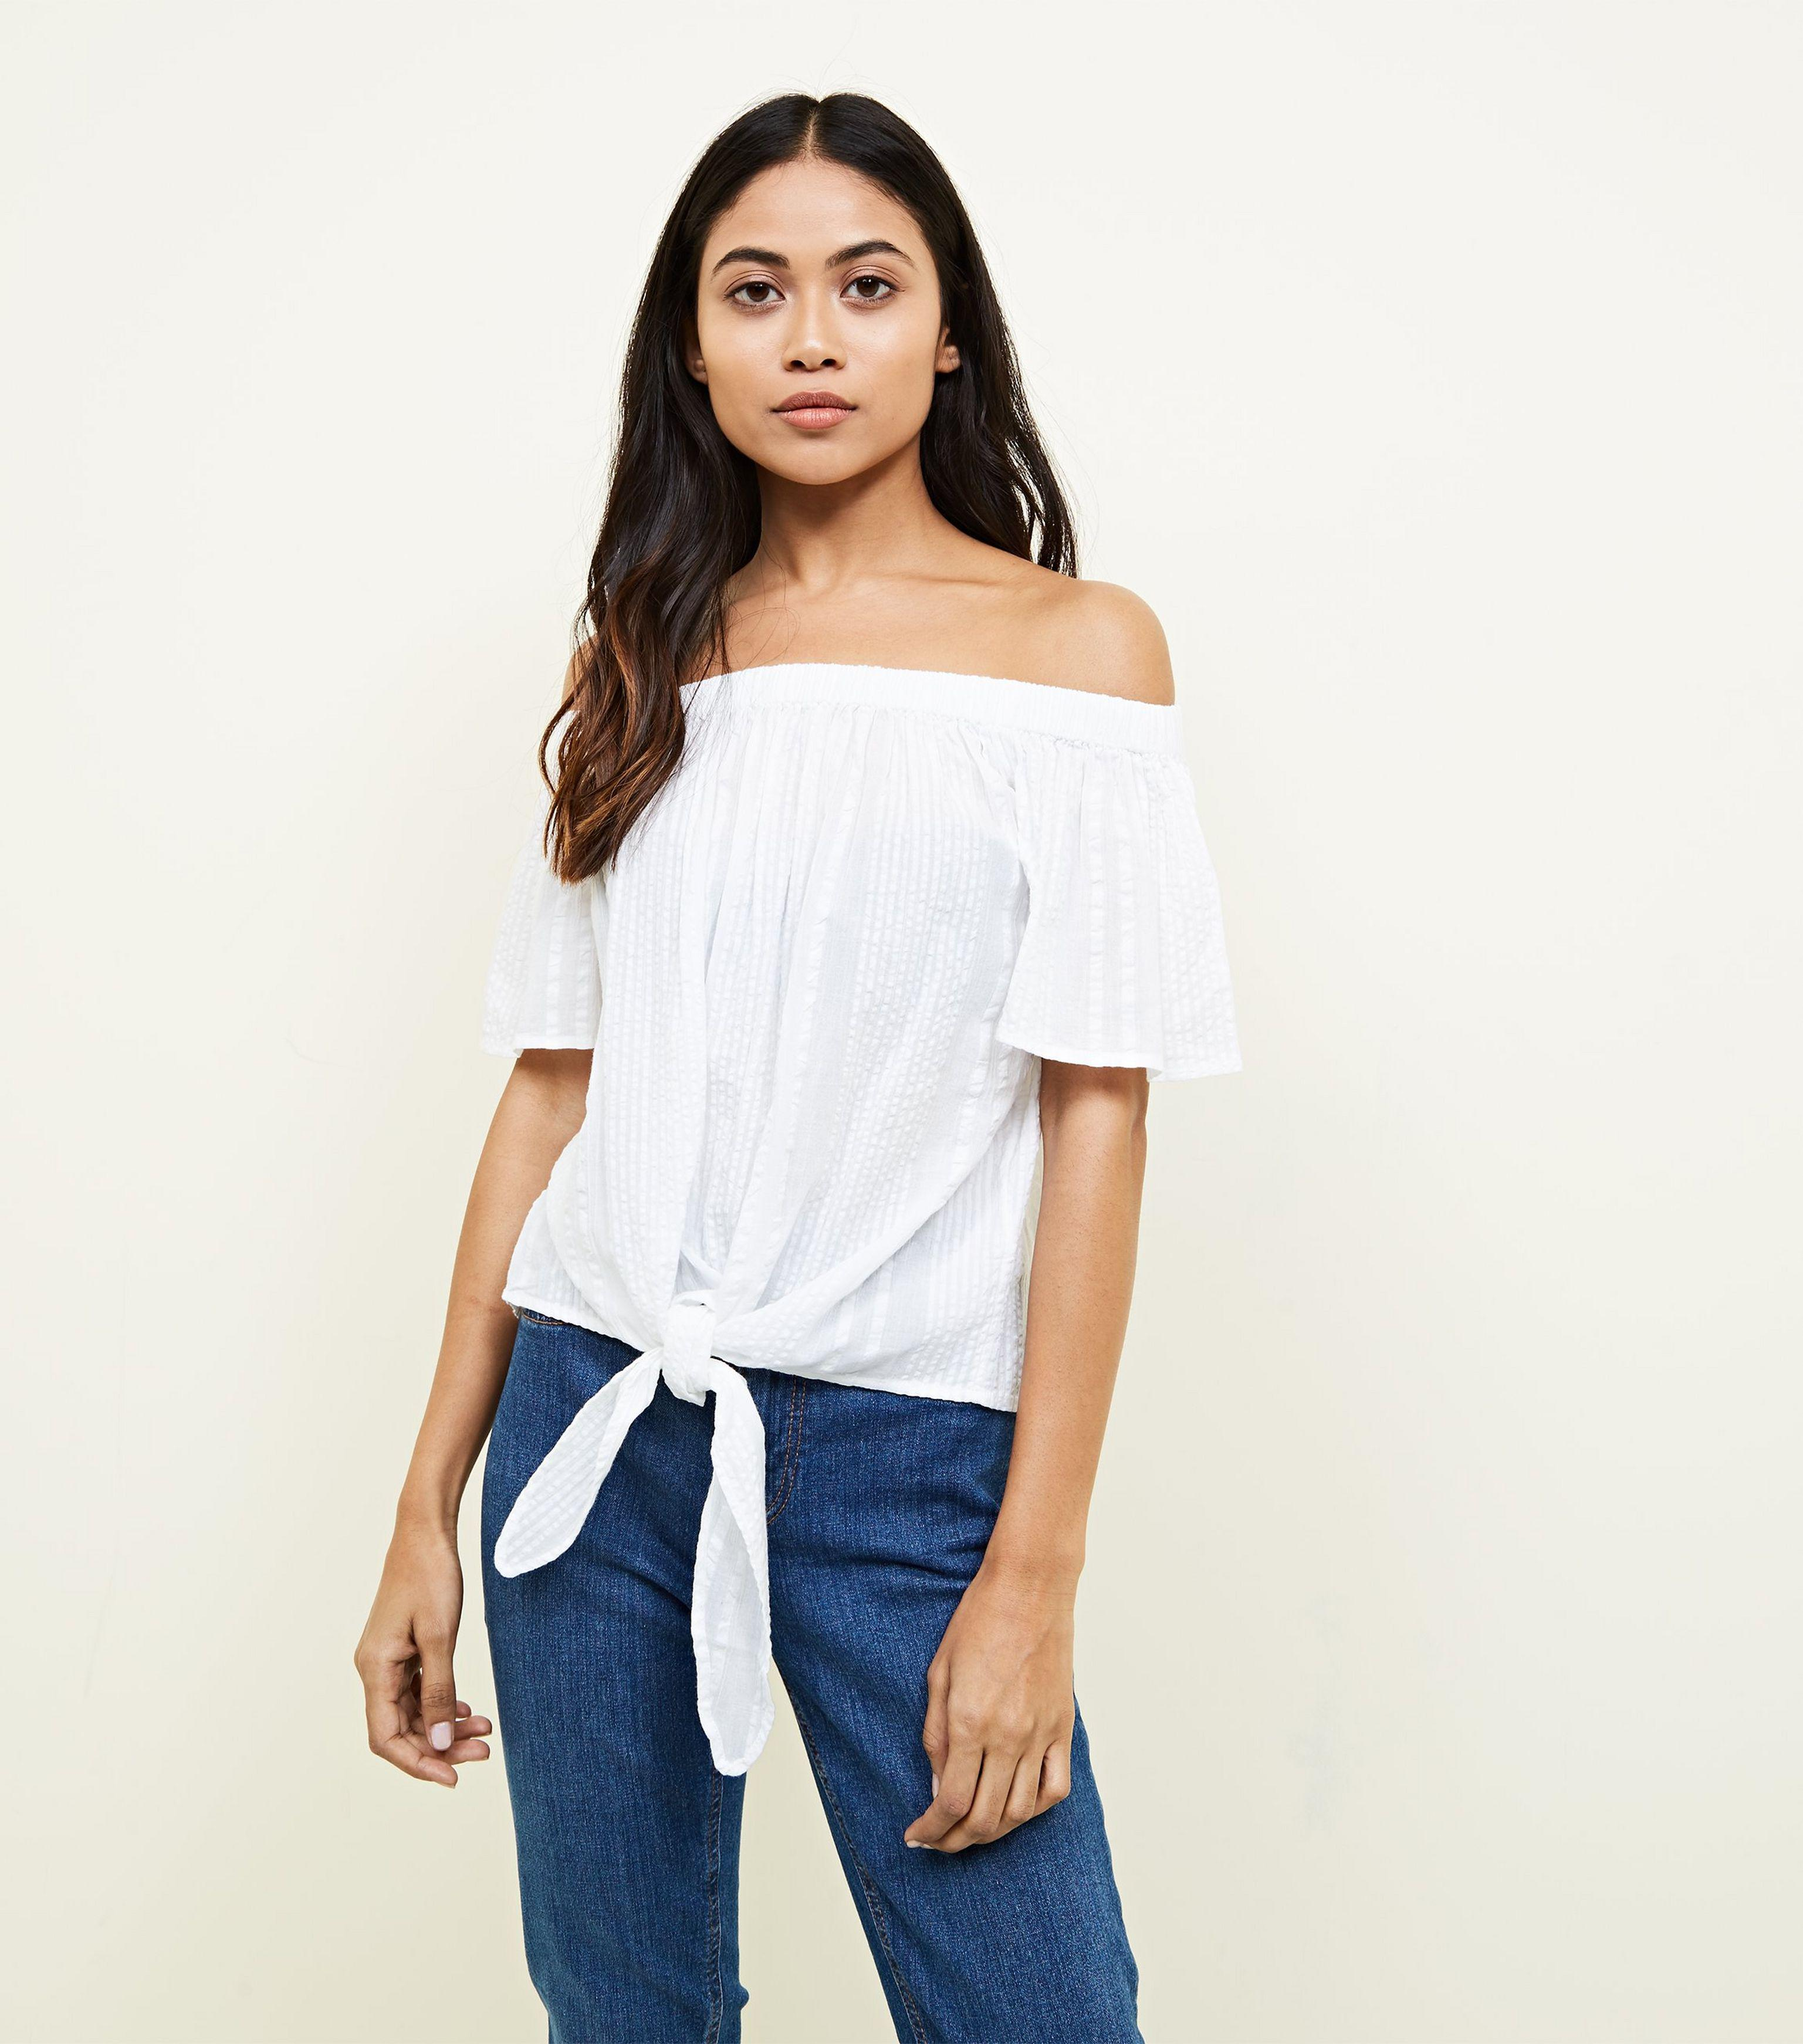 32caa717d87 New Look Petite White Tie Front Bardot Top in White - Lyst